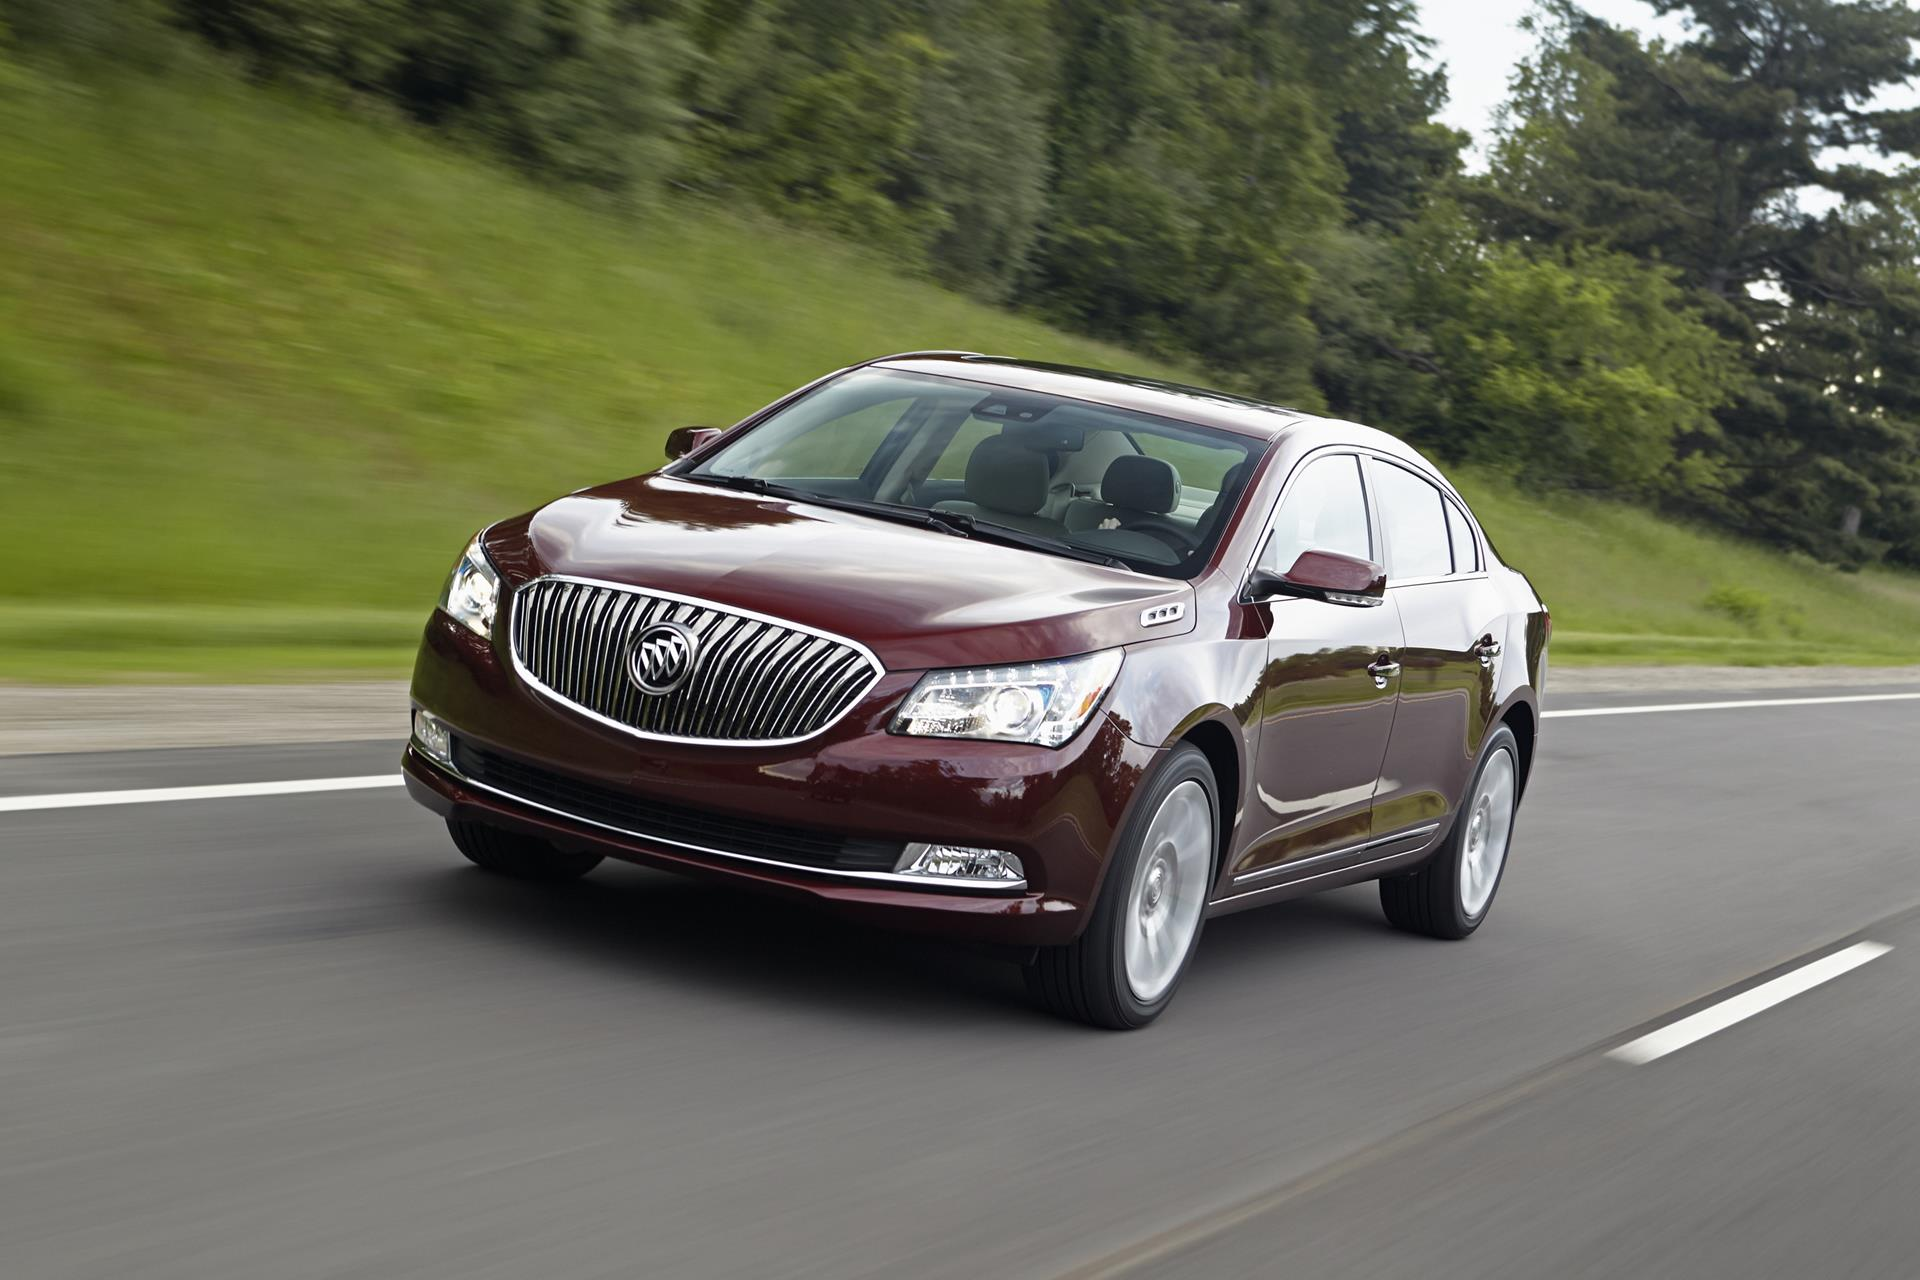 2016 Buick LaCrosse News and Information